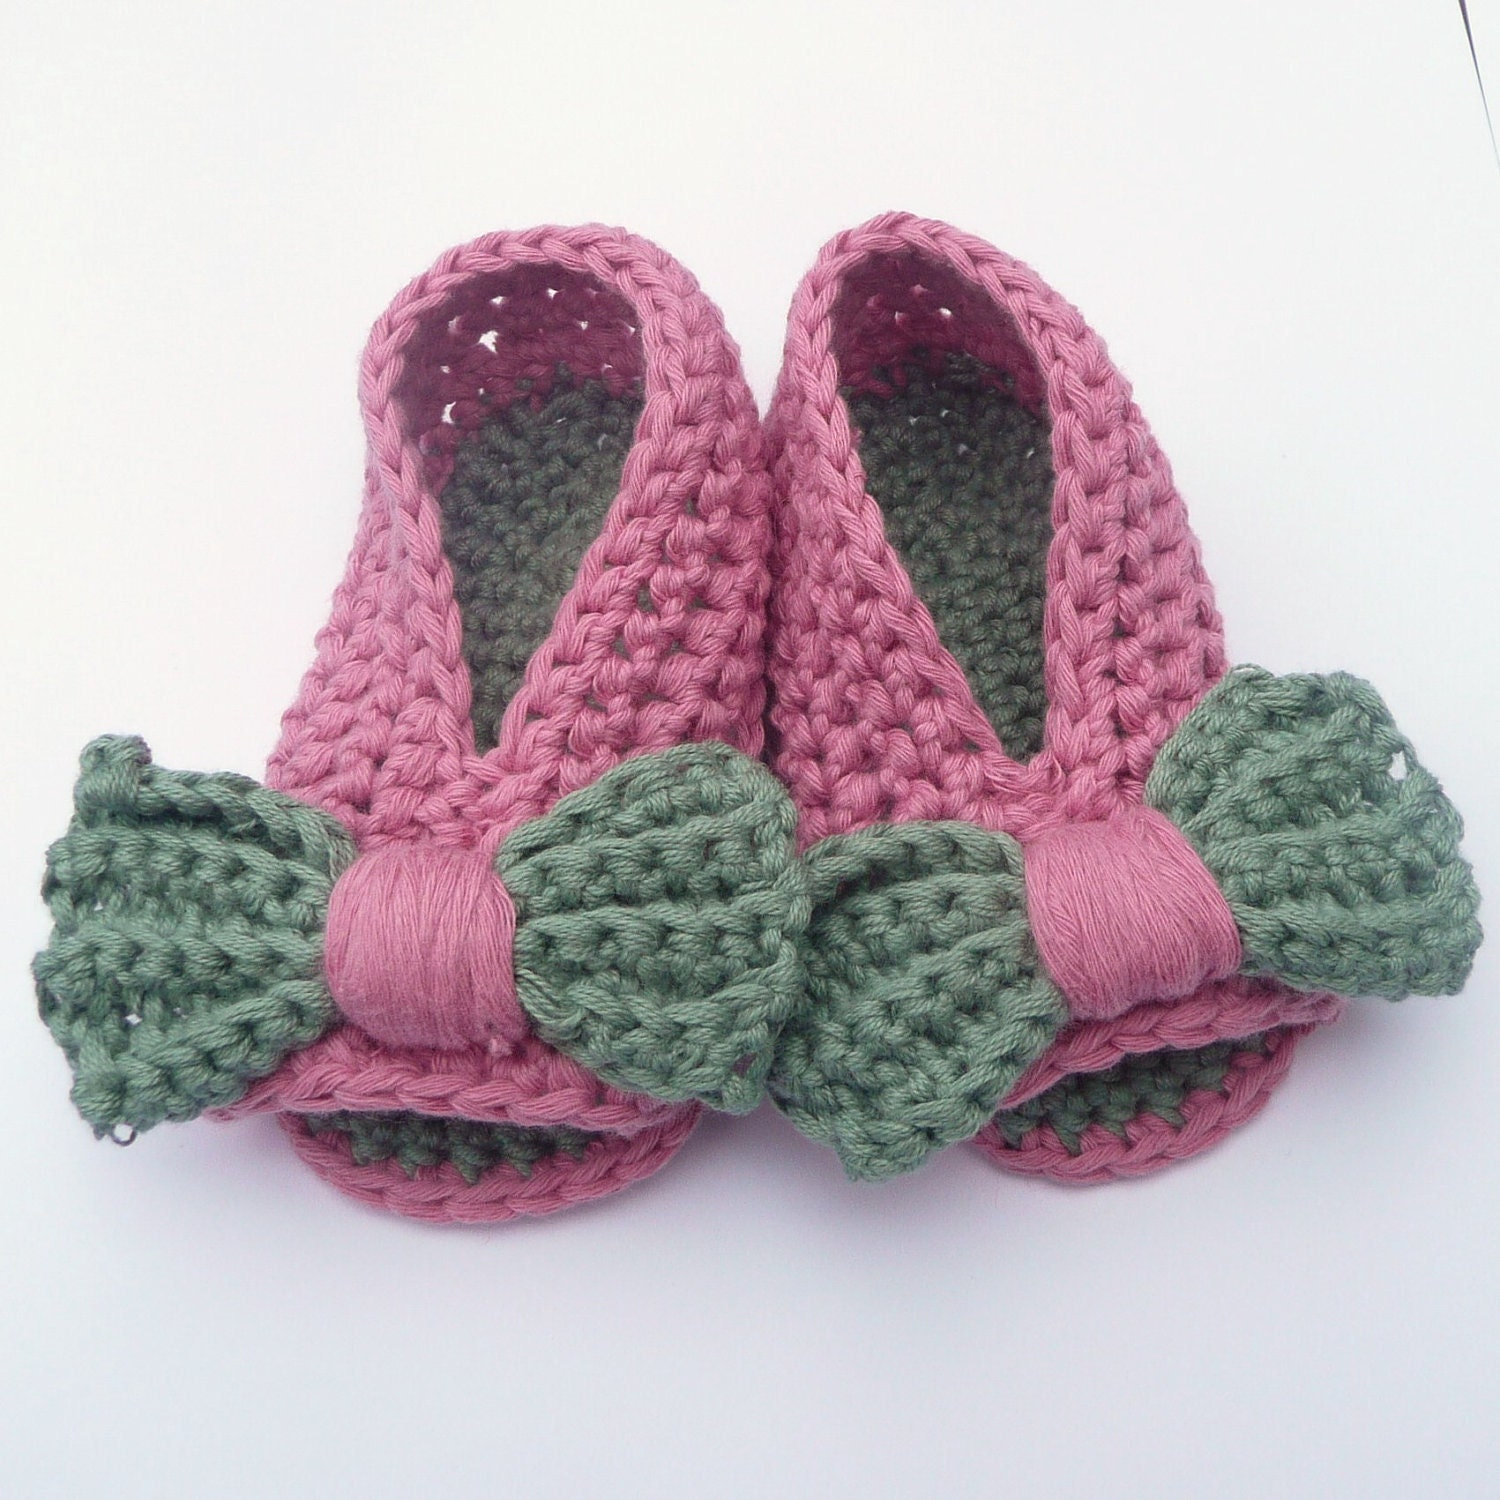 Crochet Patterns For Baby Booties And Hat : booties for baby fun4all